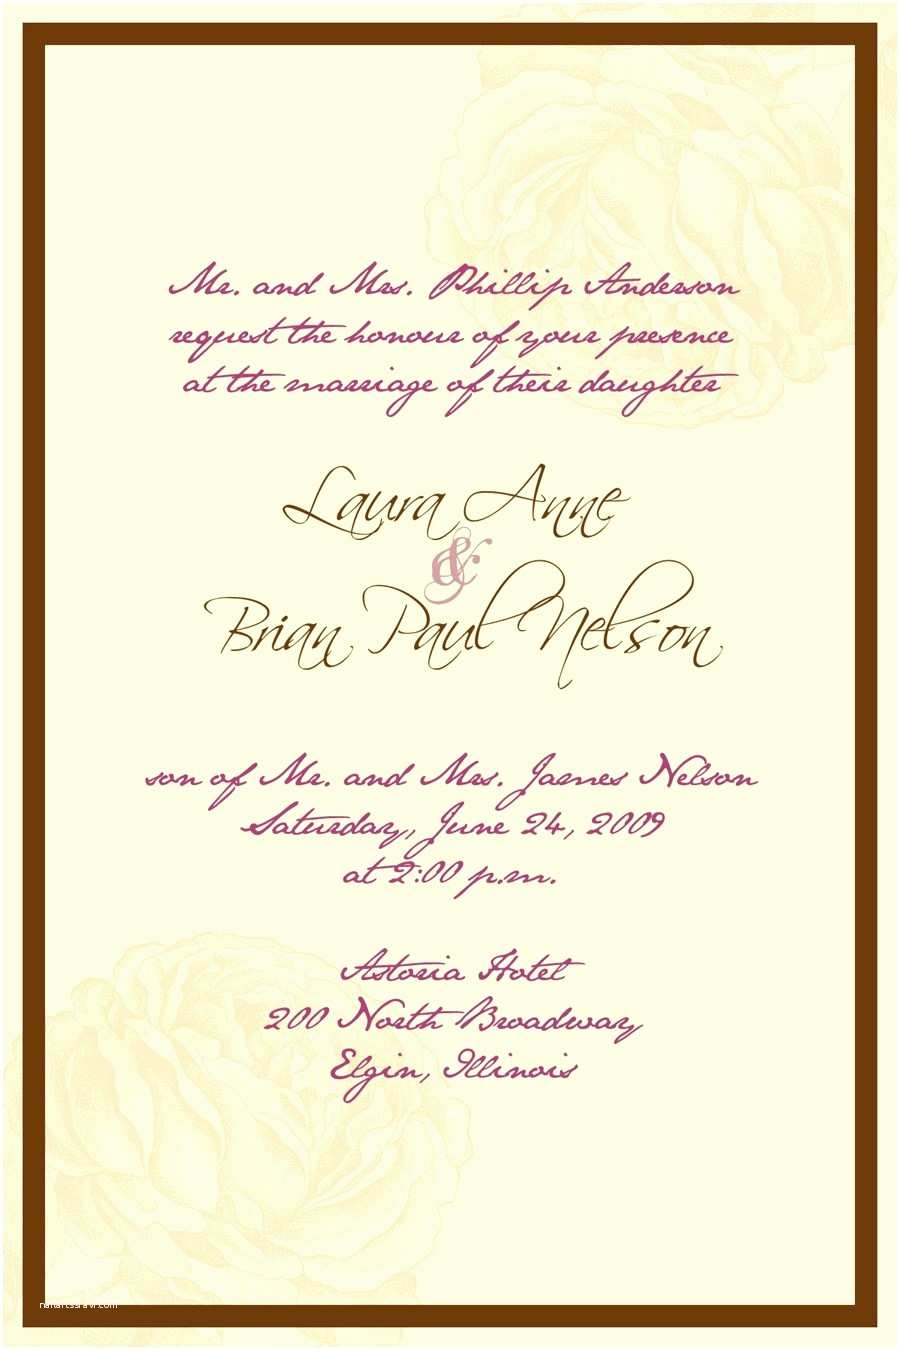 Ethiopian Traditional Wedding Invitation Cards Ethiopian Wedding Invitation Cards Ethiopian Wedding